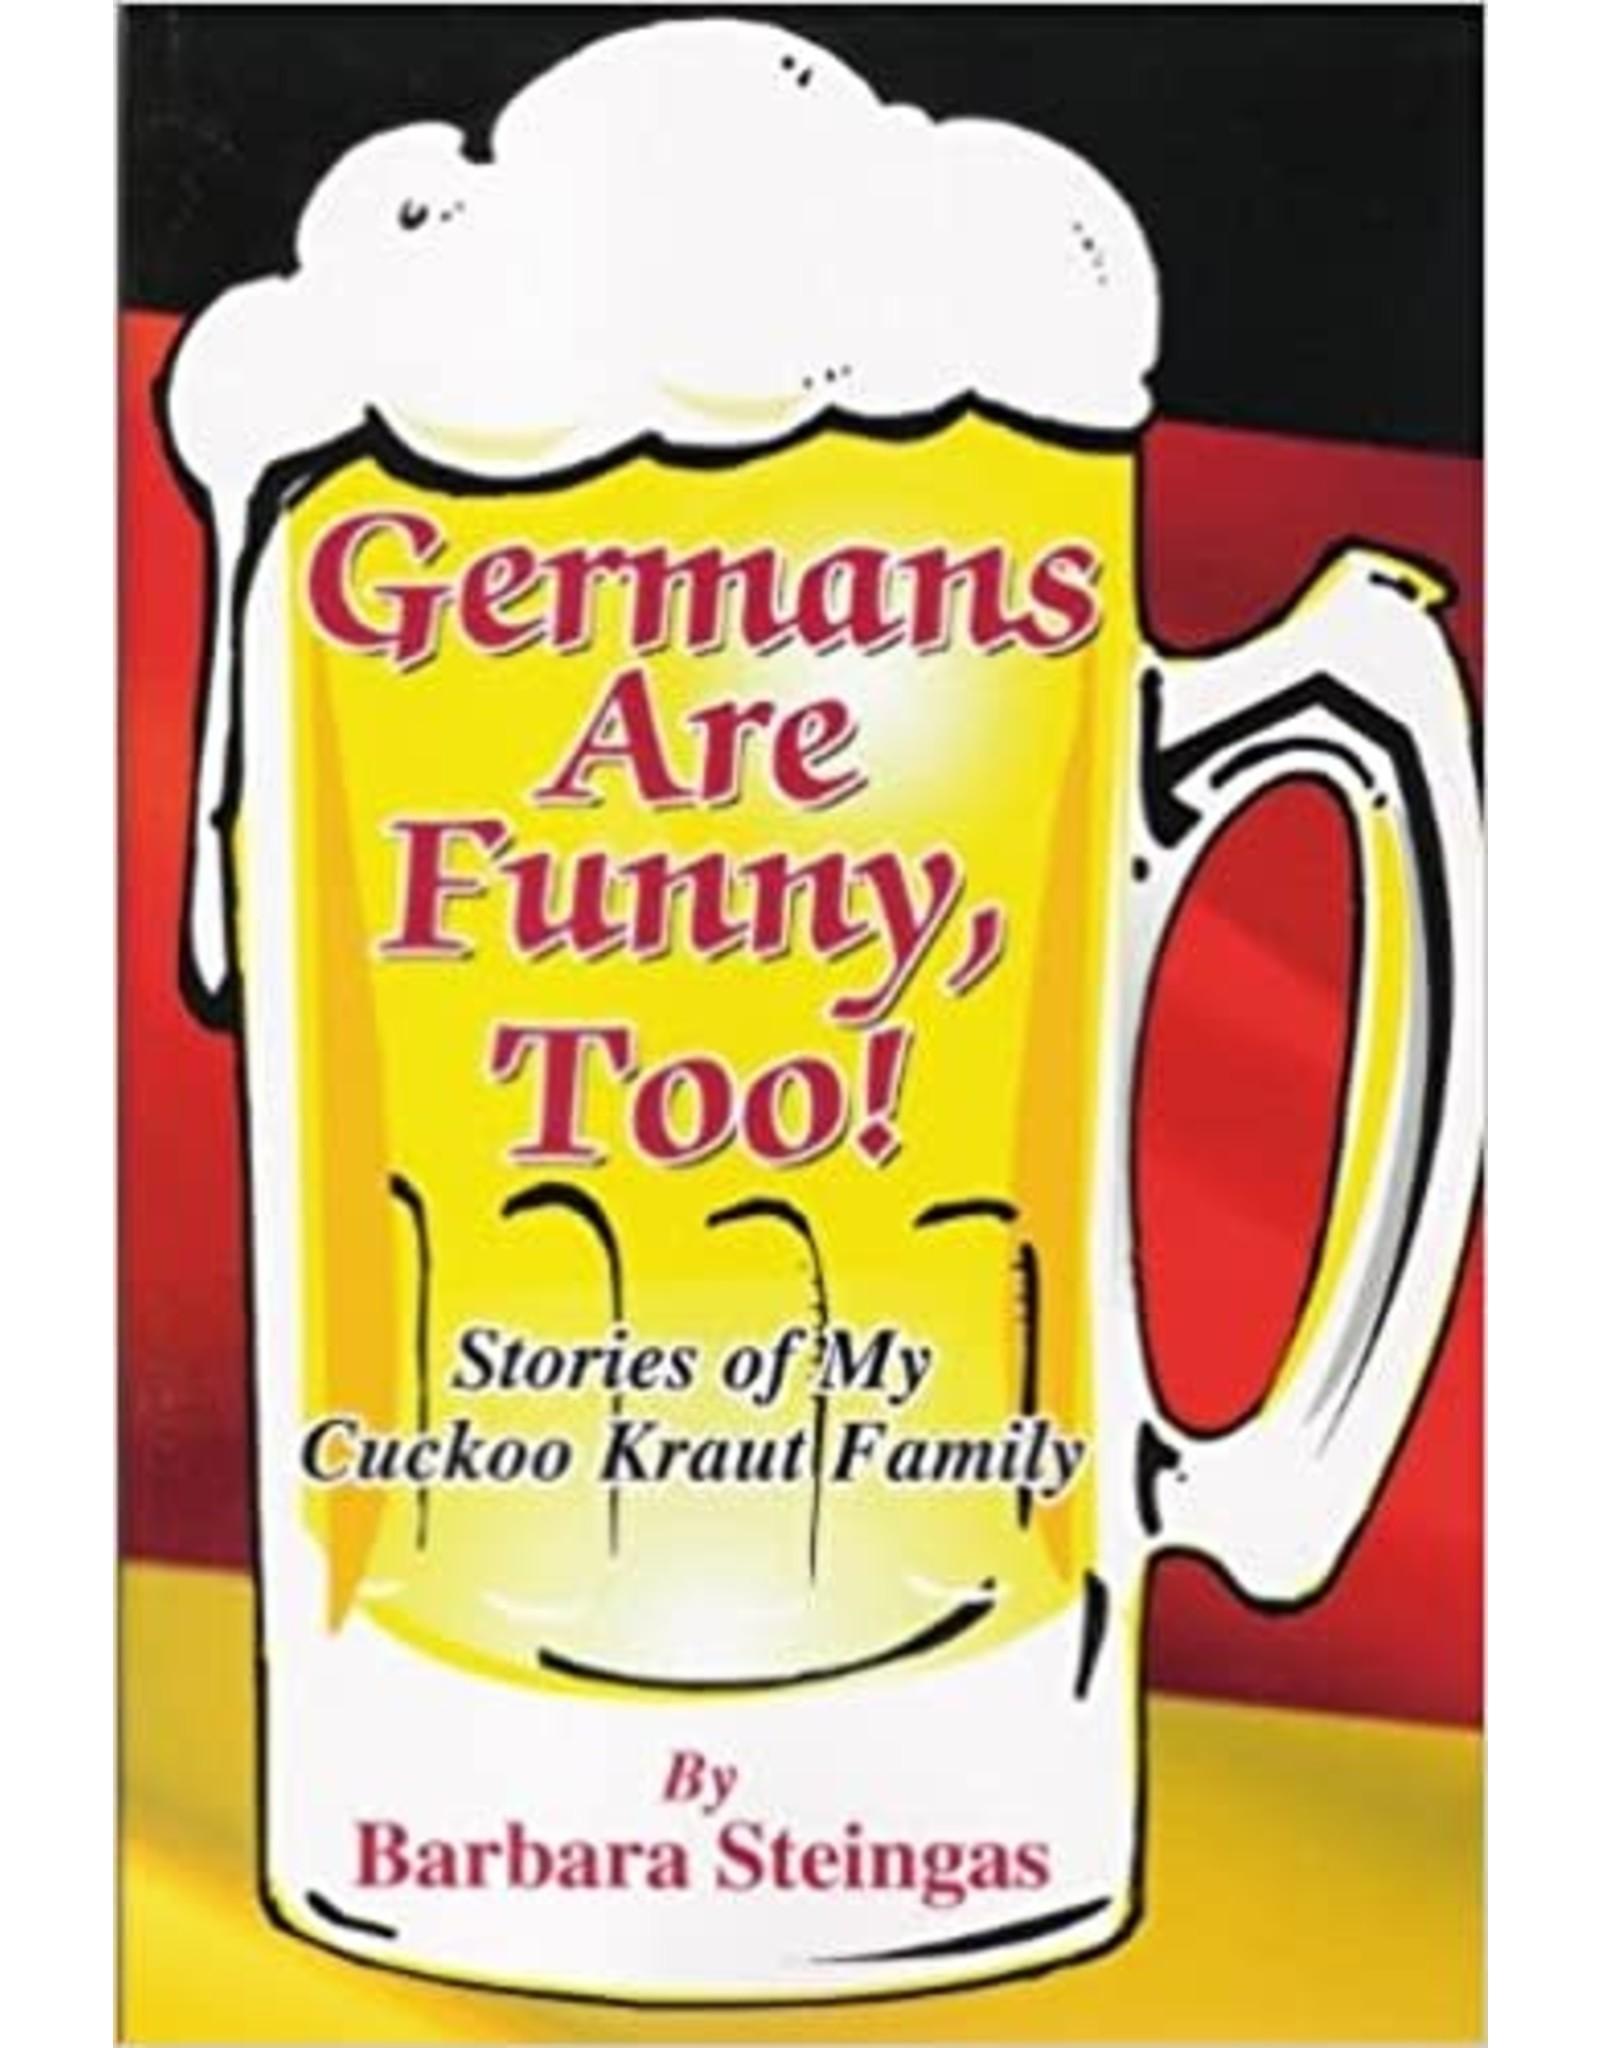 Germans Are Funny, Too!